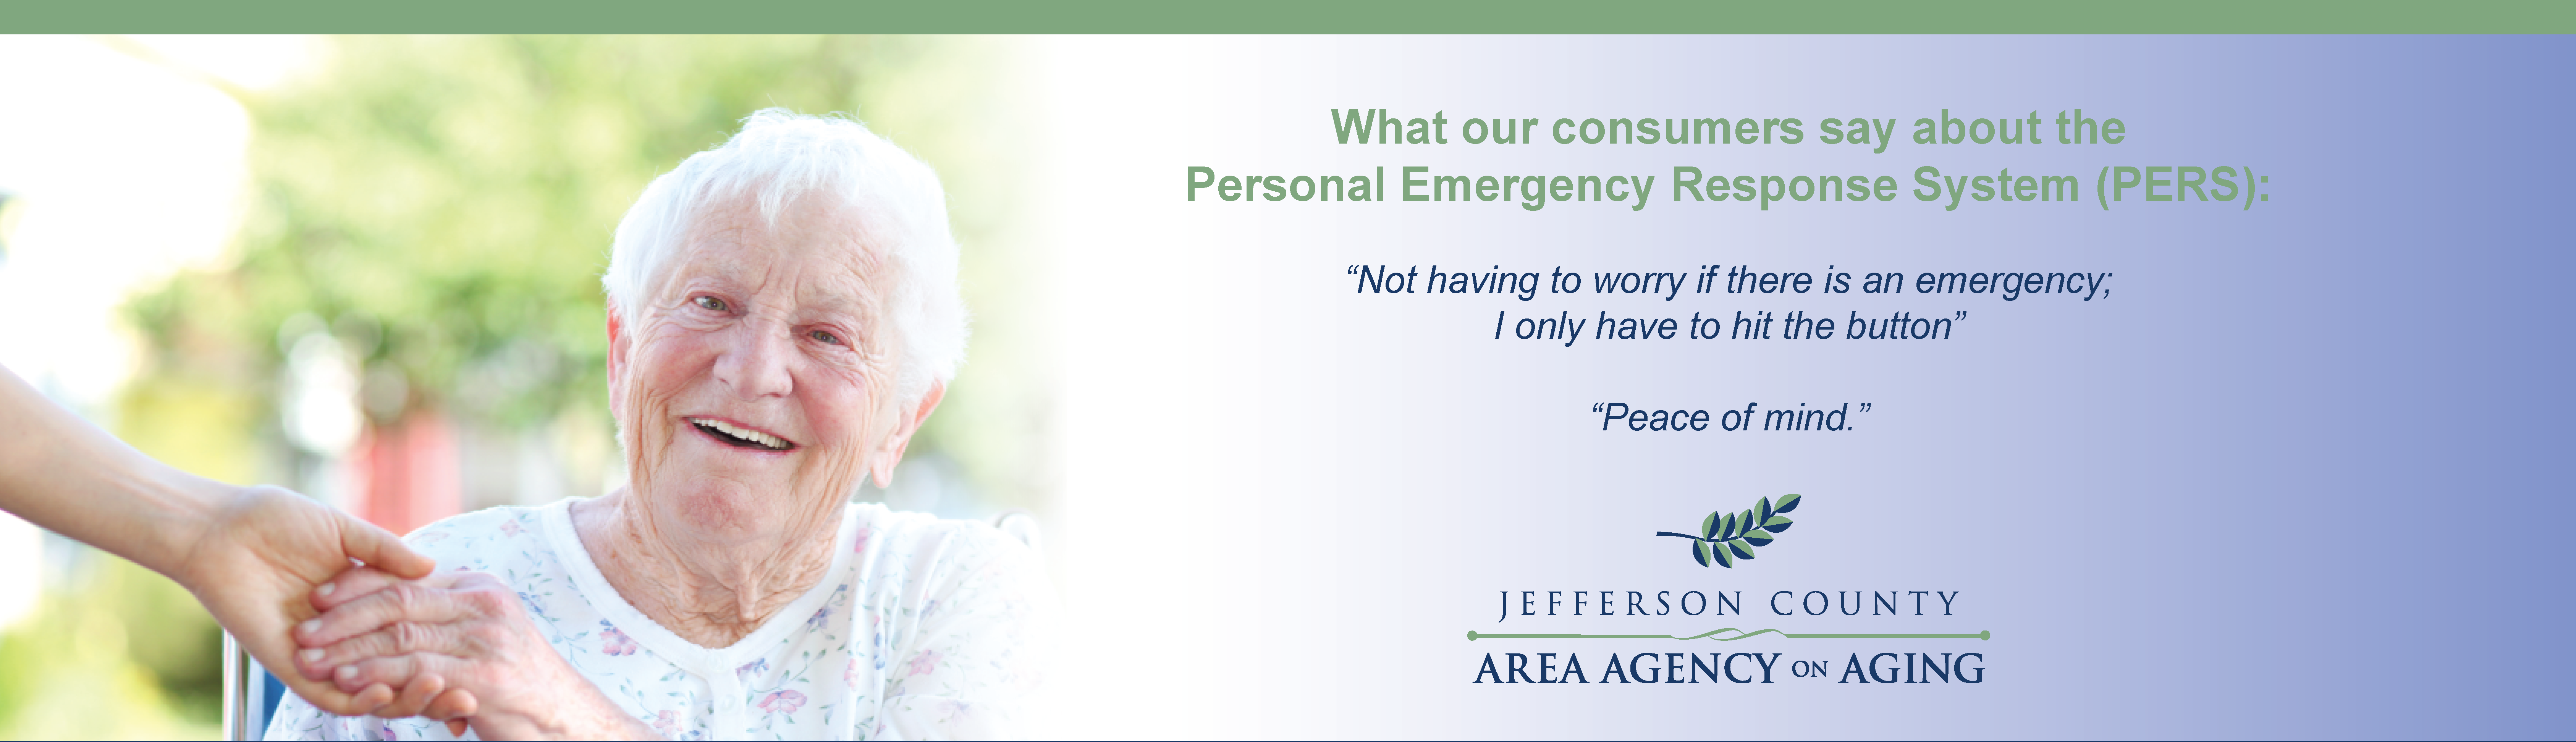 "What our consumers say about the Personal Emergency Response System (PERS): ""Not having to worry if there is an emergency; I only have to hit the button"" ""Peace of mind."""